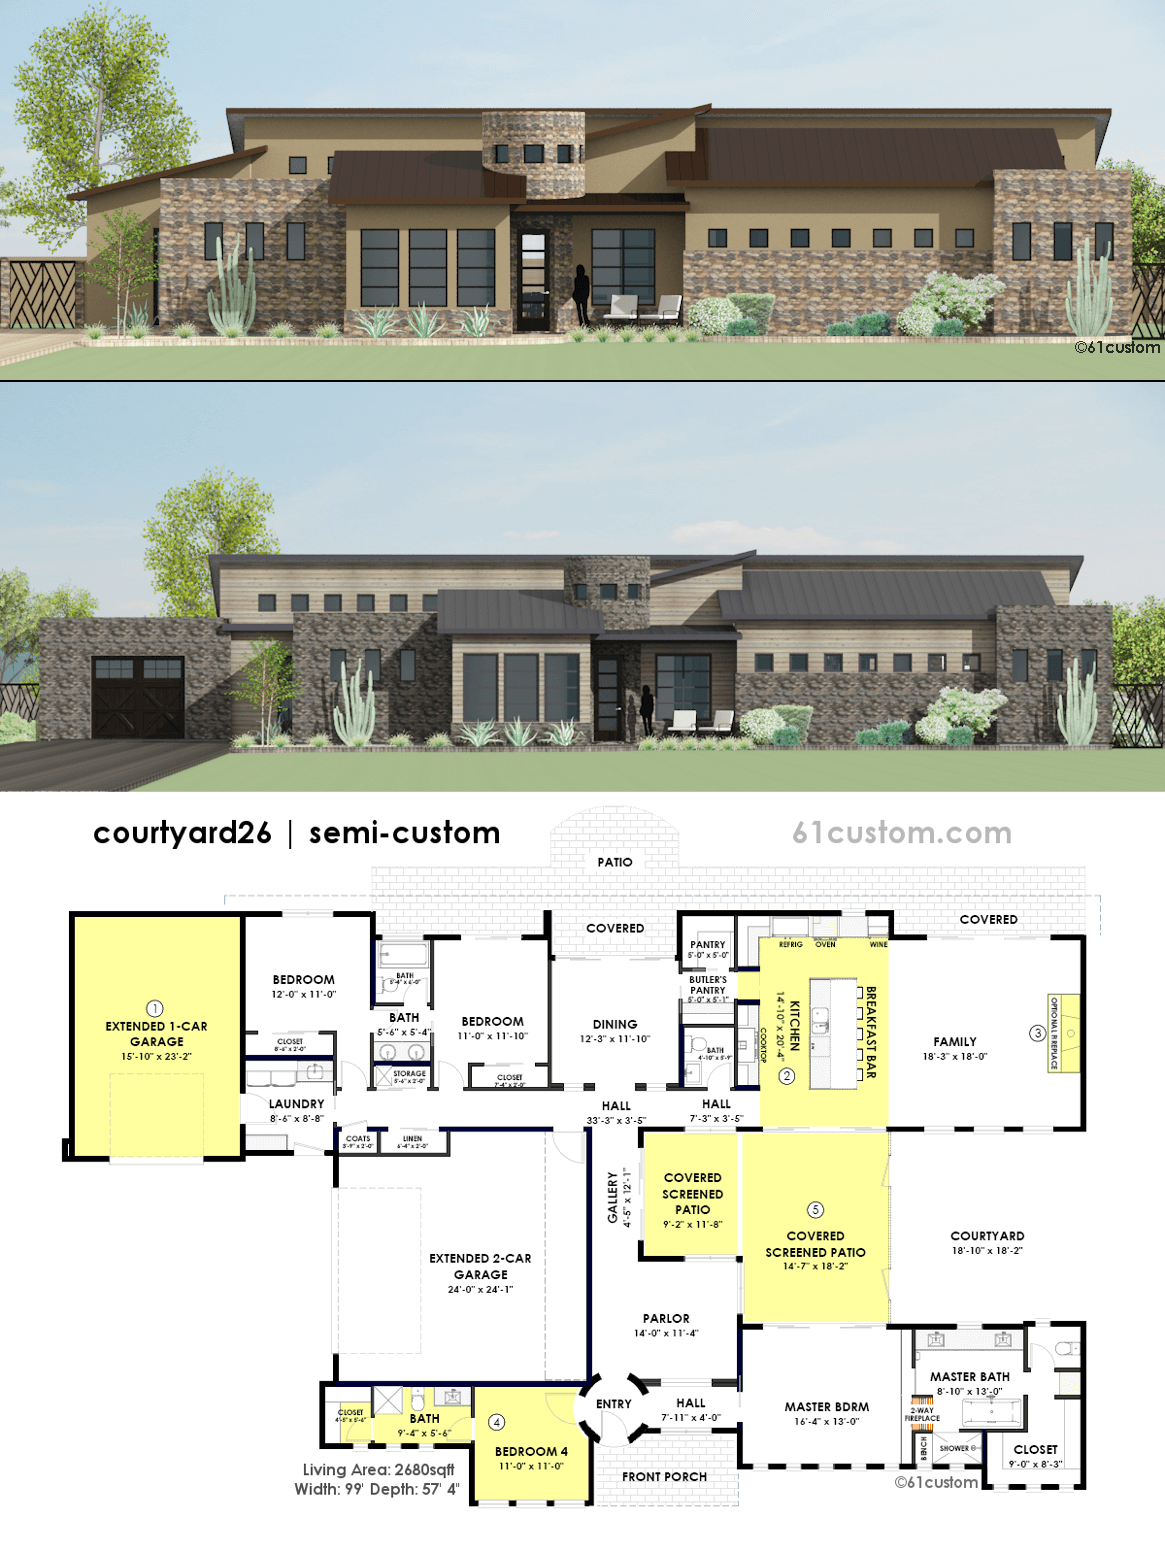 Contemporary side courtyard house plan 61custom for Modern house design plans